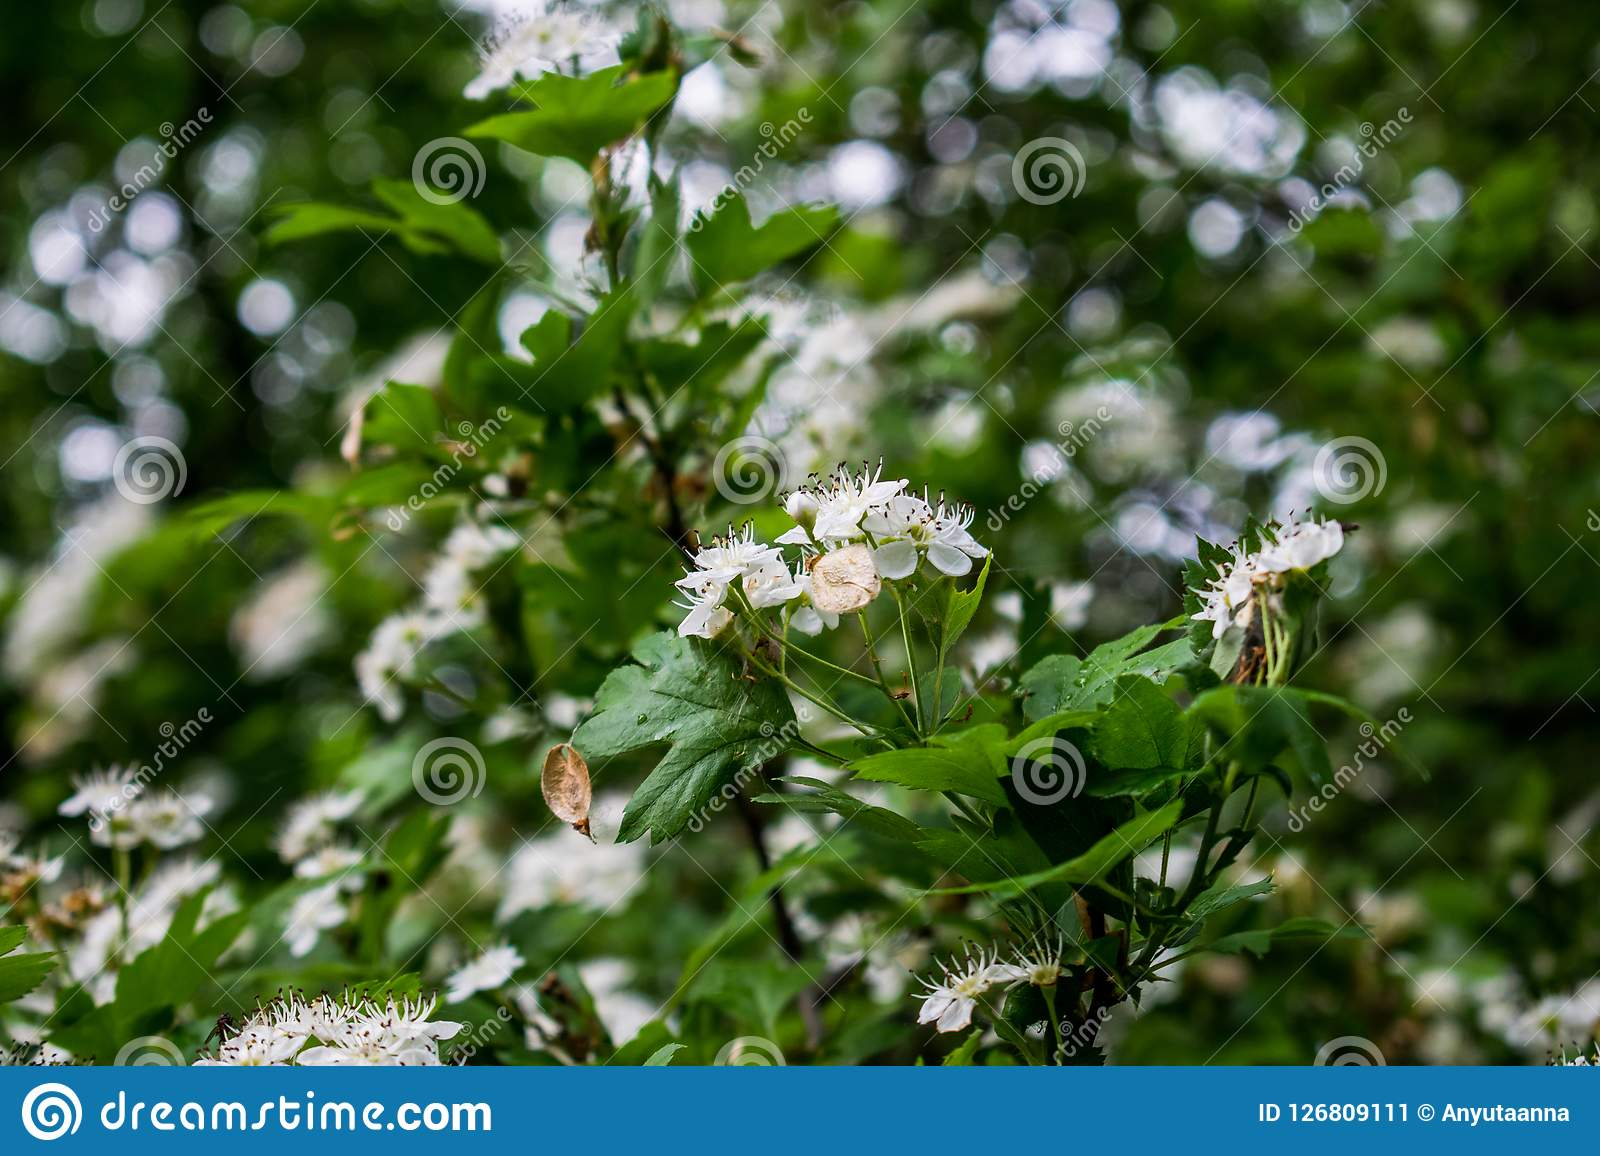 Flowering Tree Big Spring Bush Many Small White Flowers And Buds